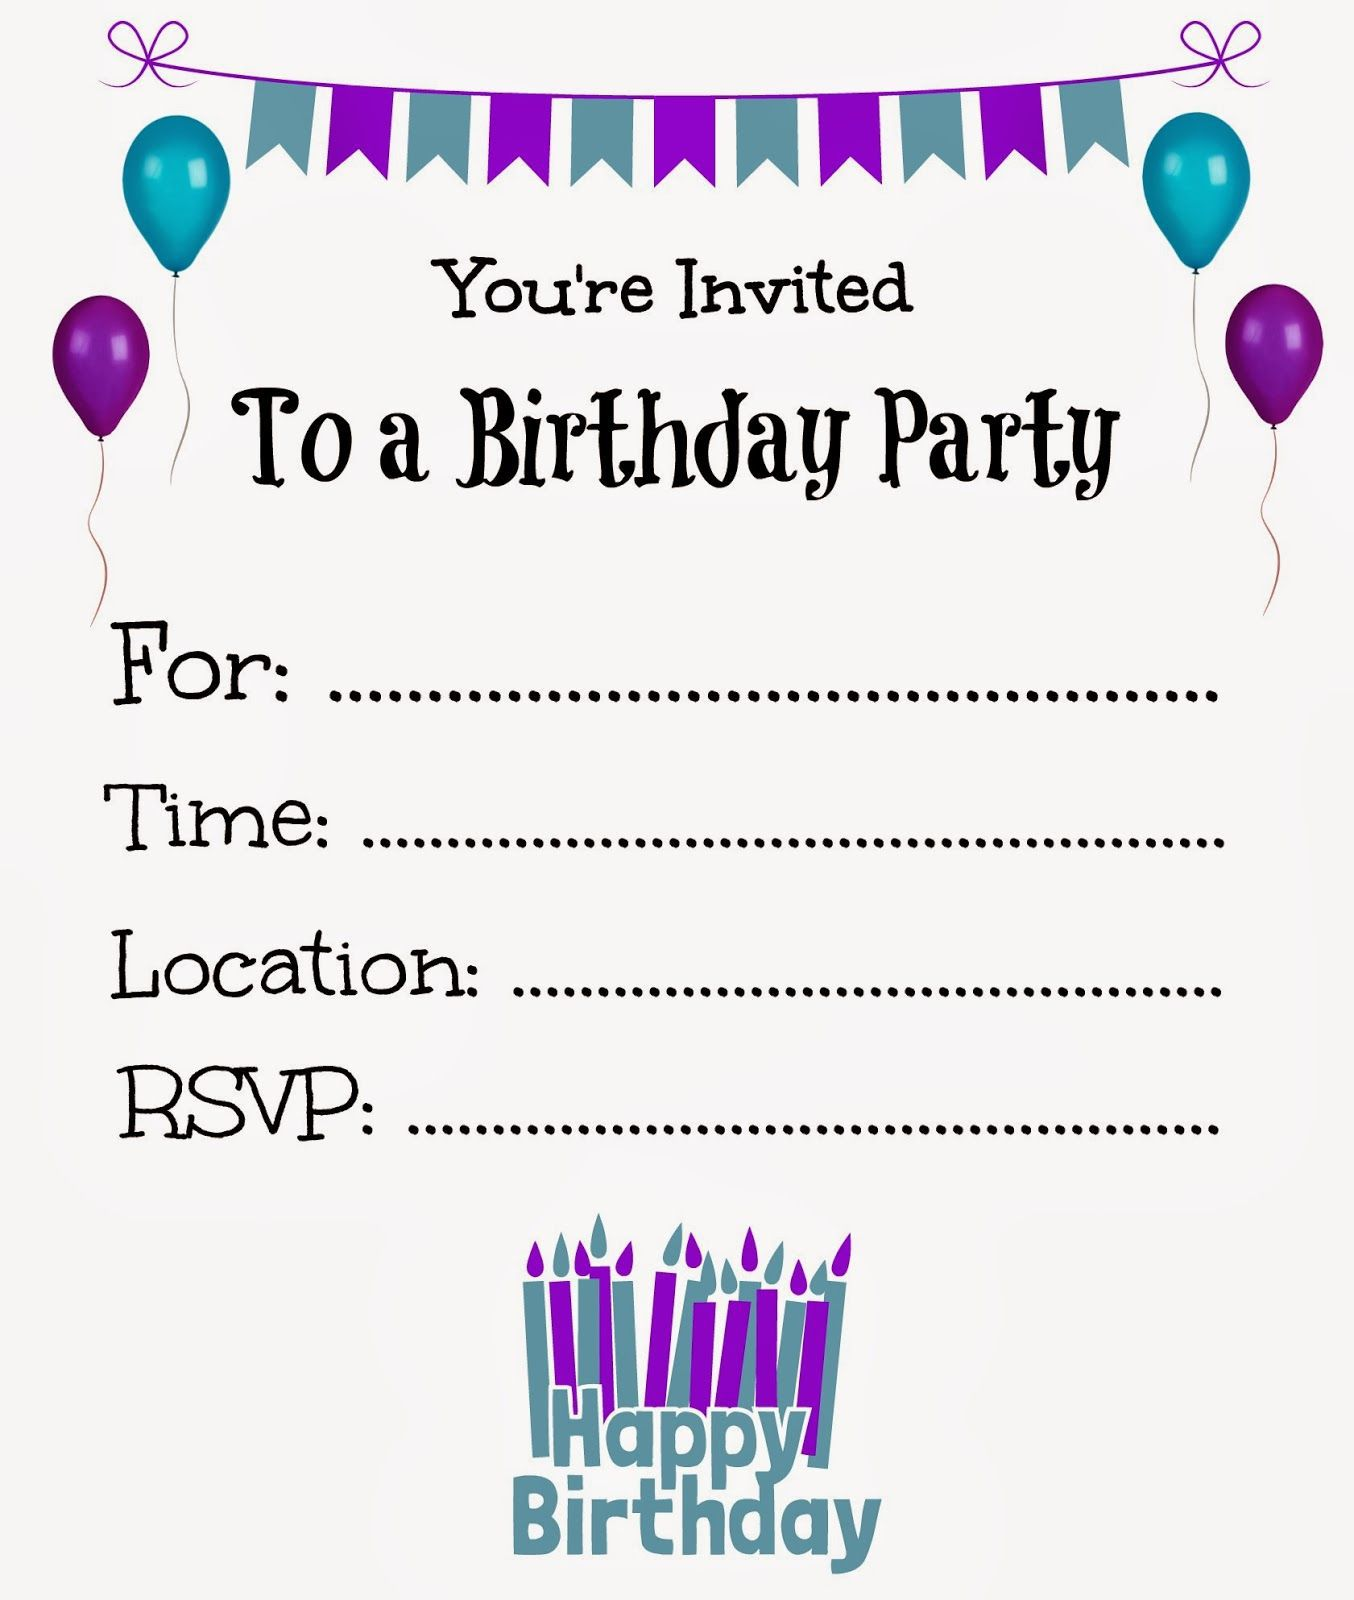 008 Fascinating Party Invite Template Word Example  Holiday Invitation Wording Sample Retirement Free EditableFull